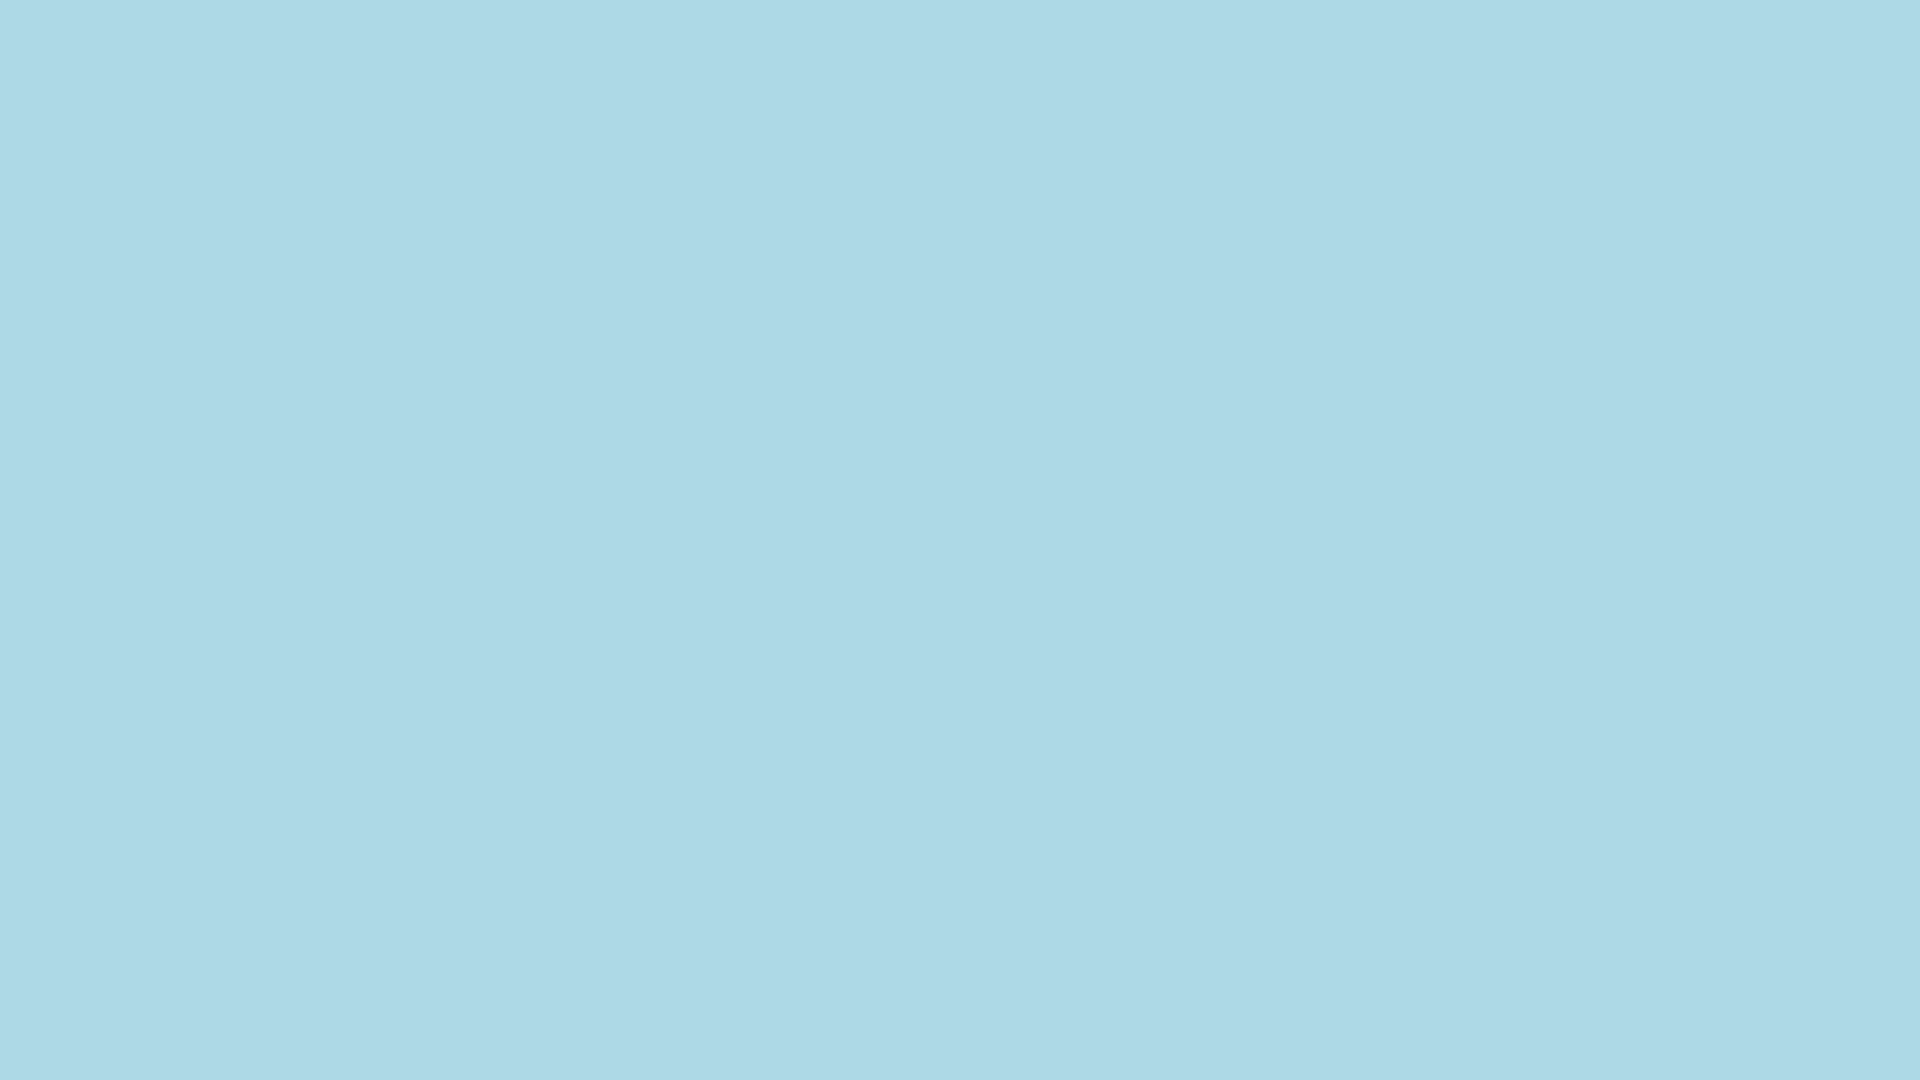 Light Blue Background Related Keywords amp Suggestions 1920x1080